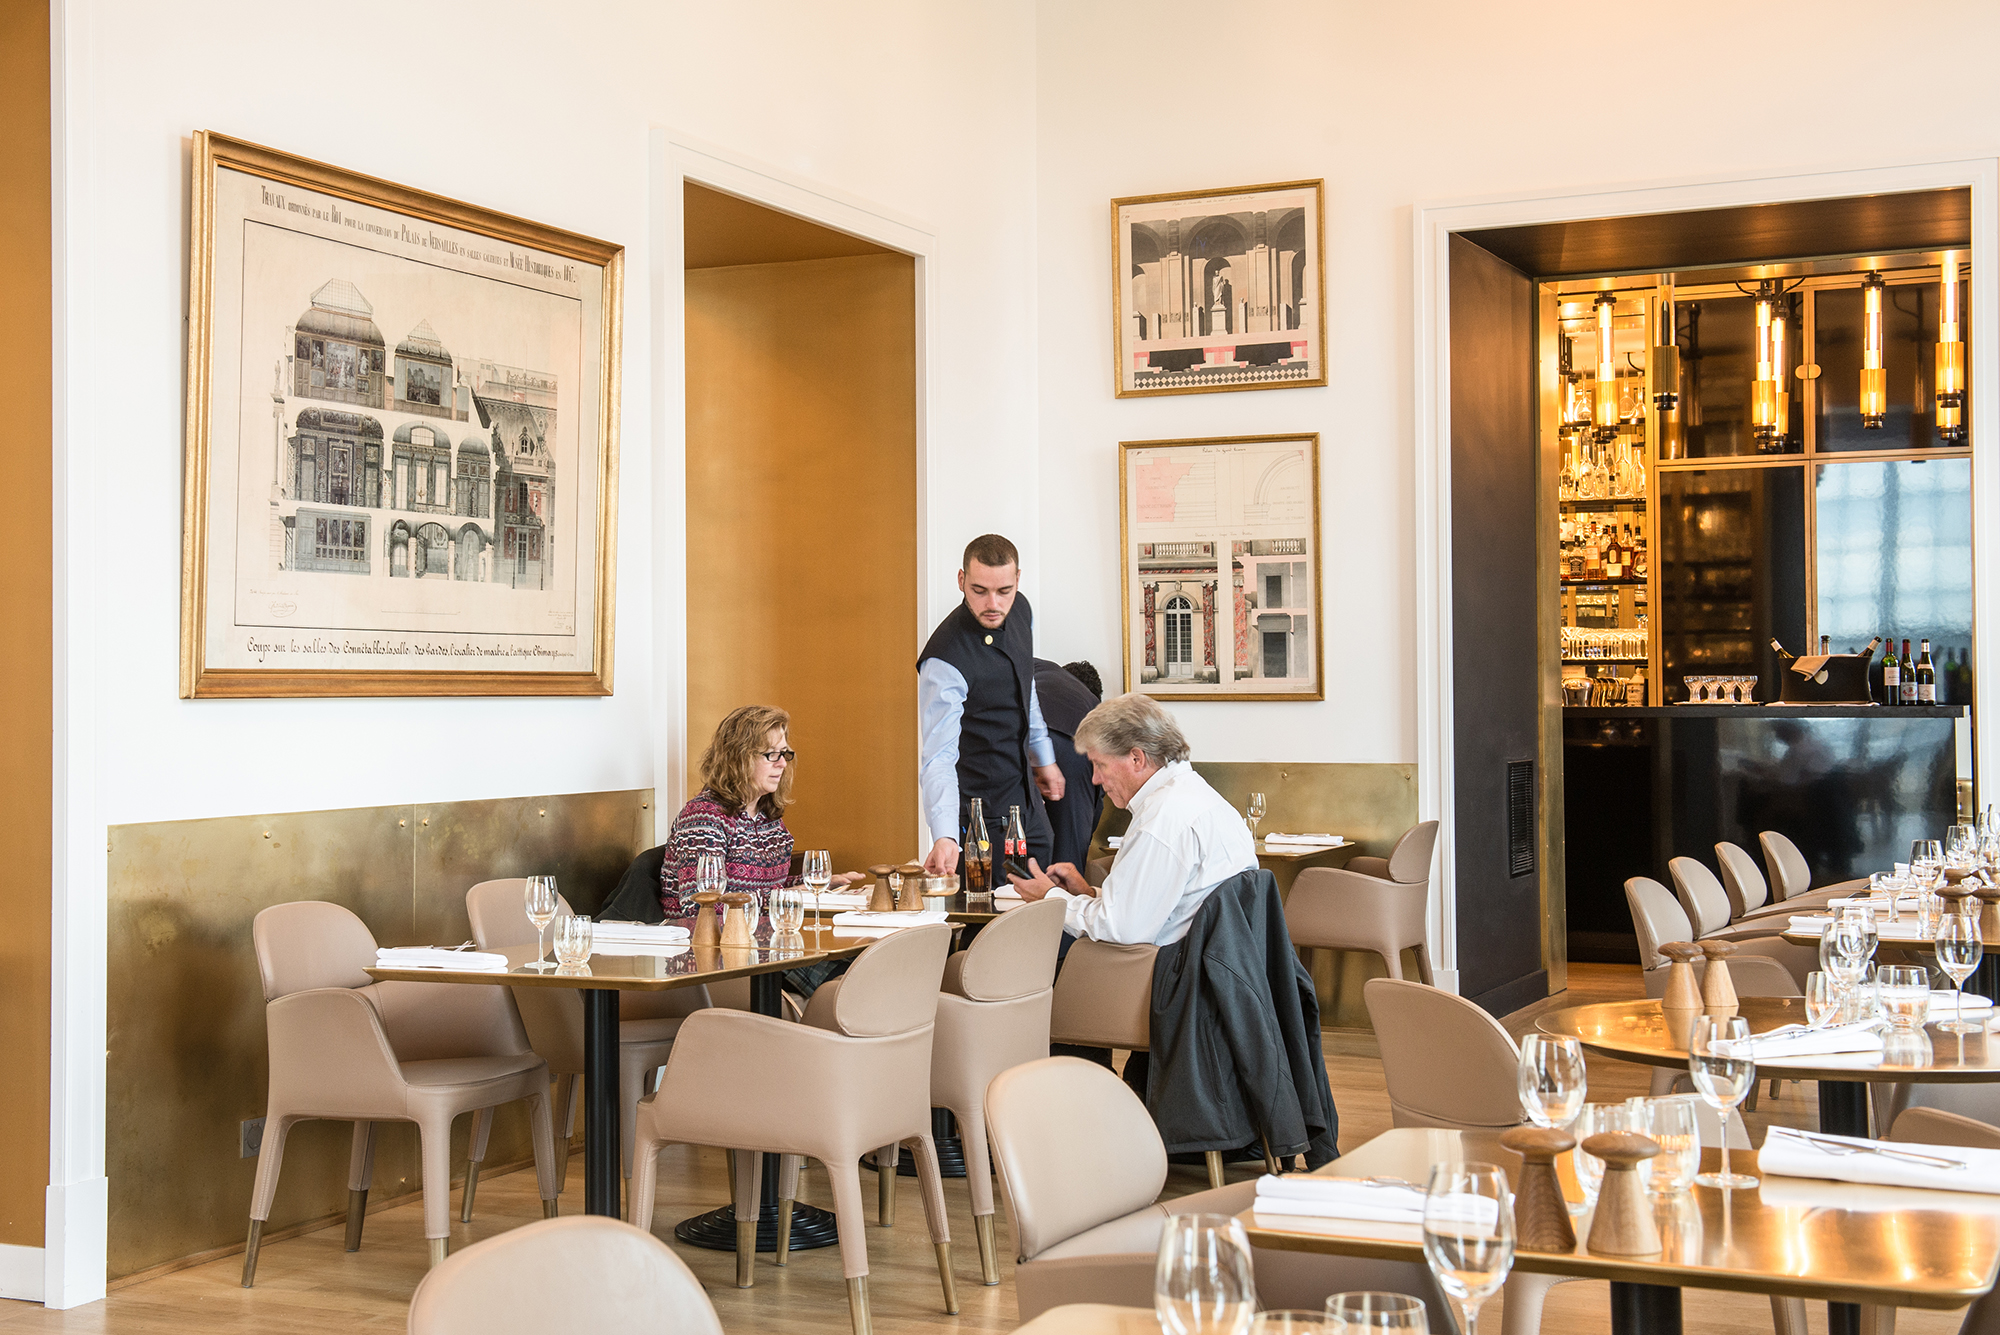 Ore by Alain Ducasse at the Palace of Versailles